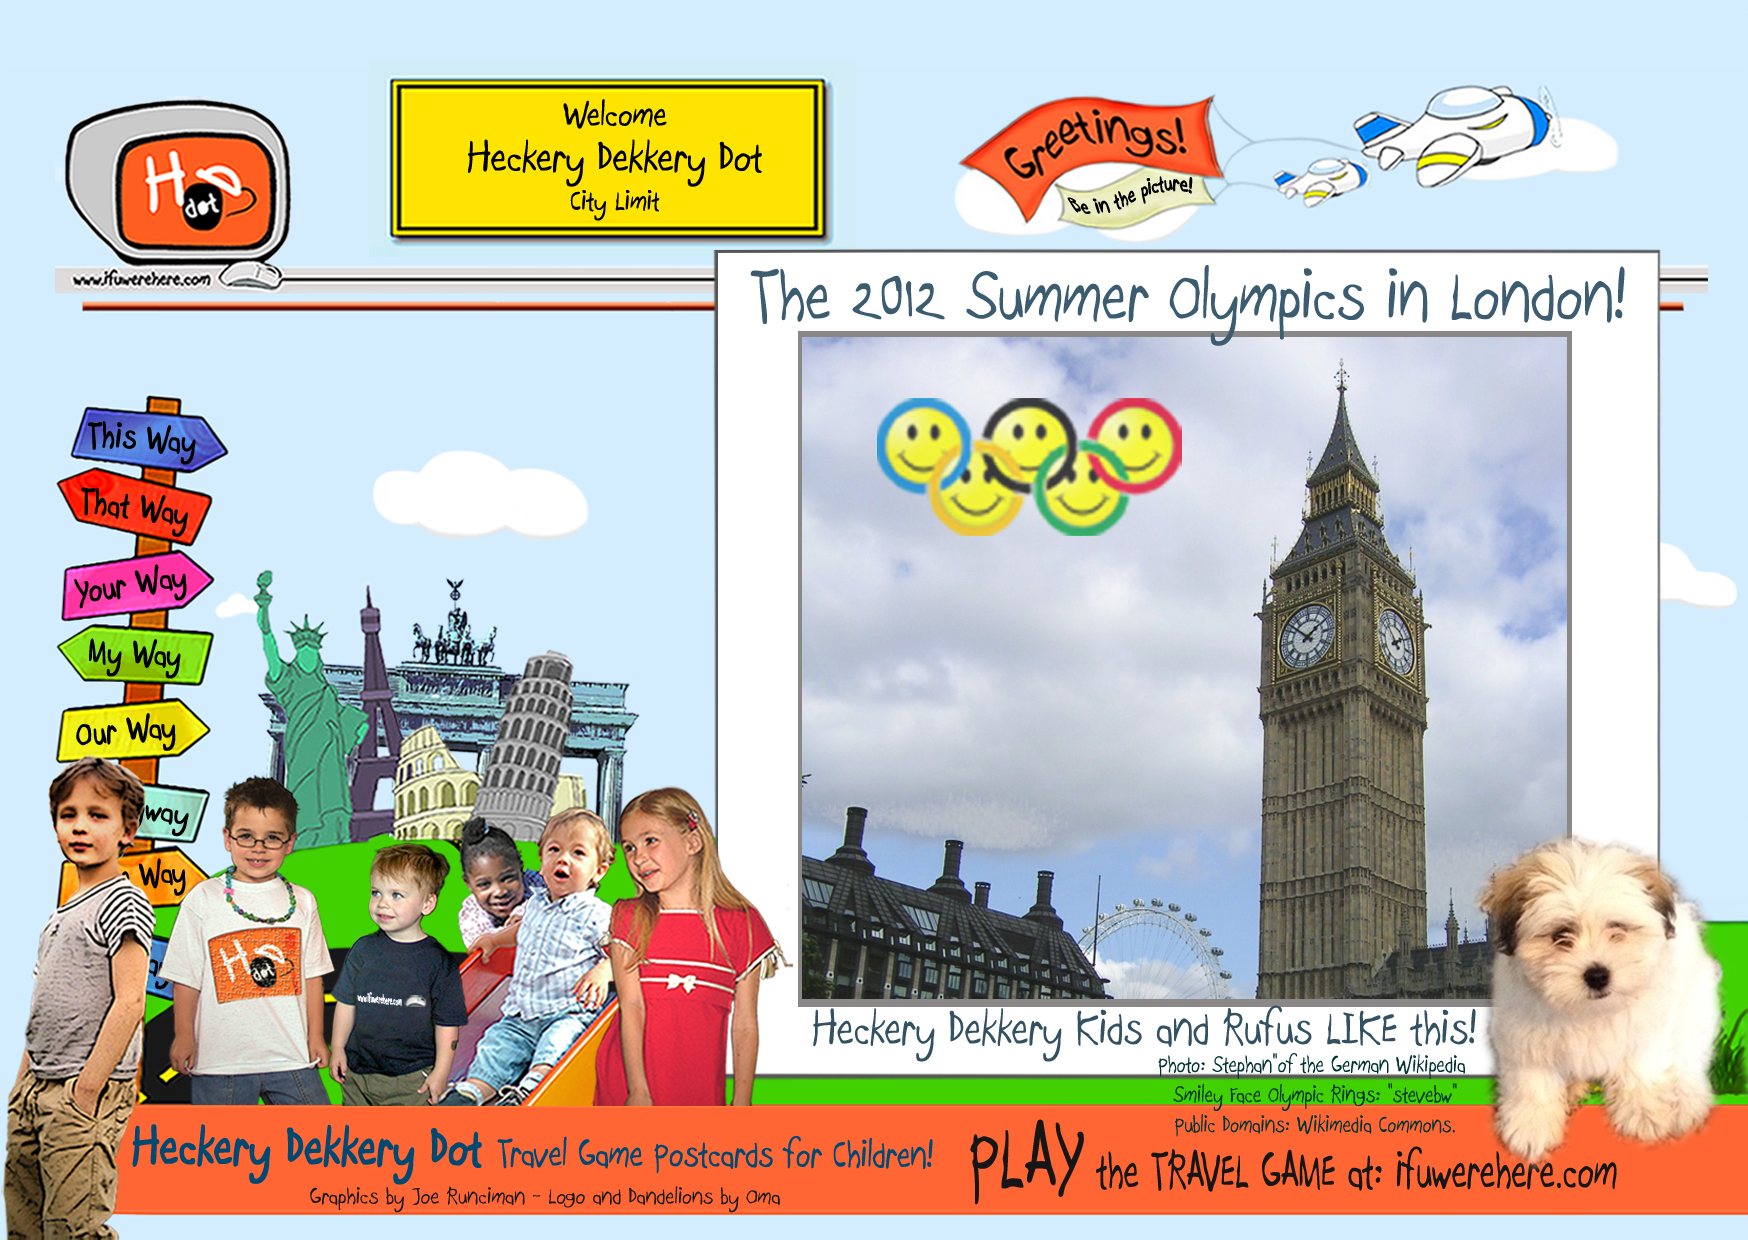 The 2012 Summer Olympics in London